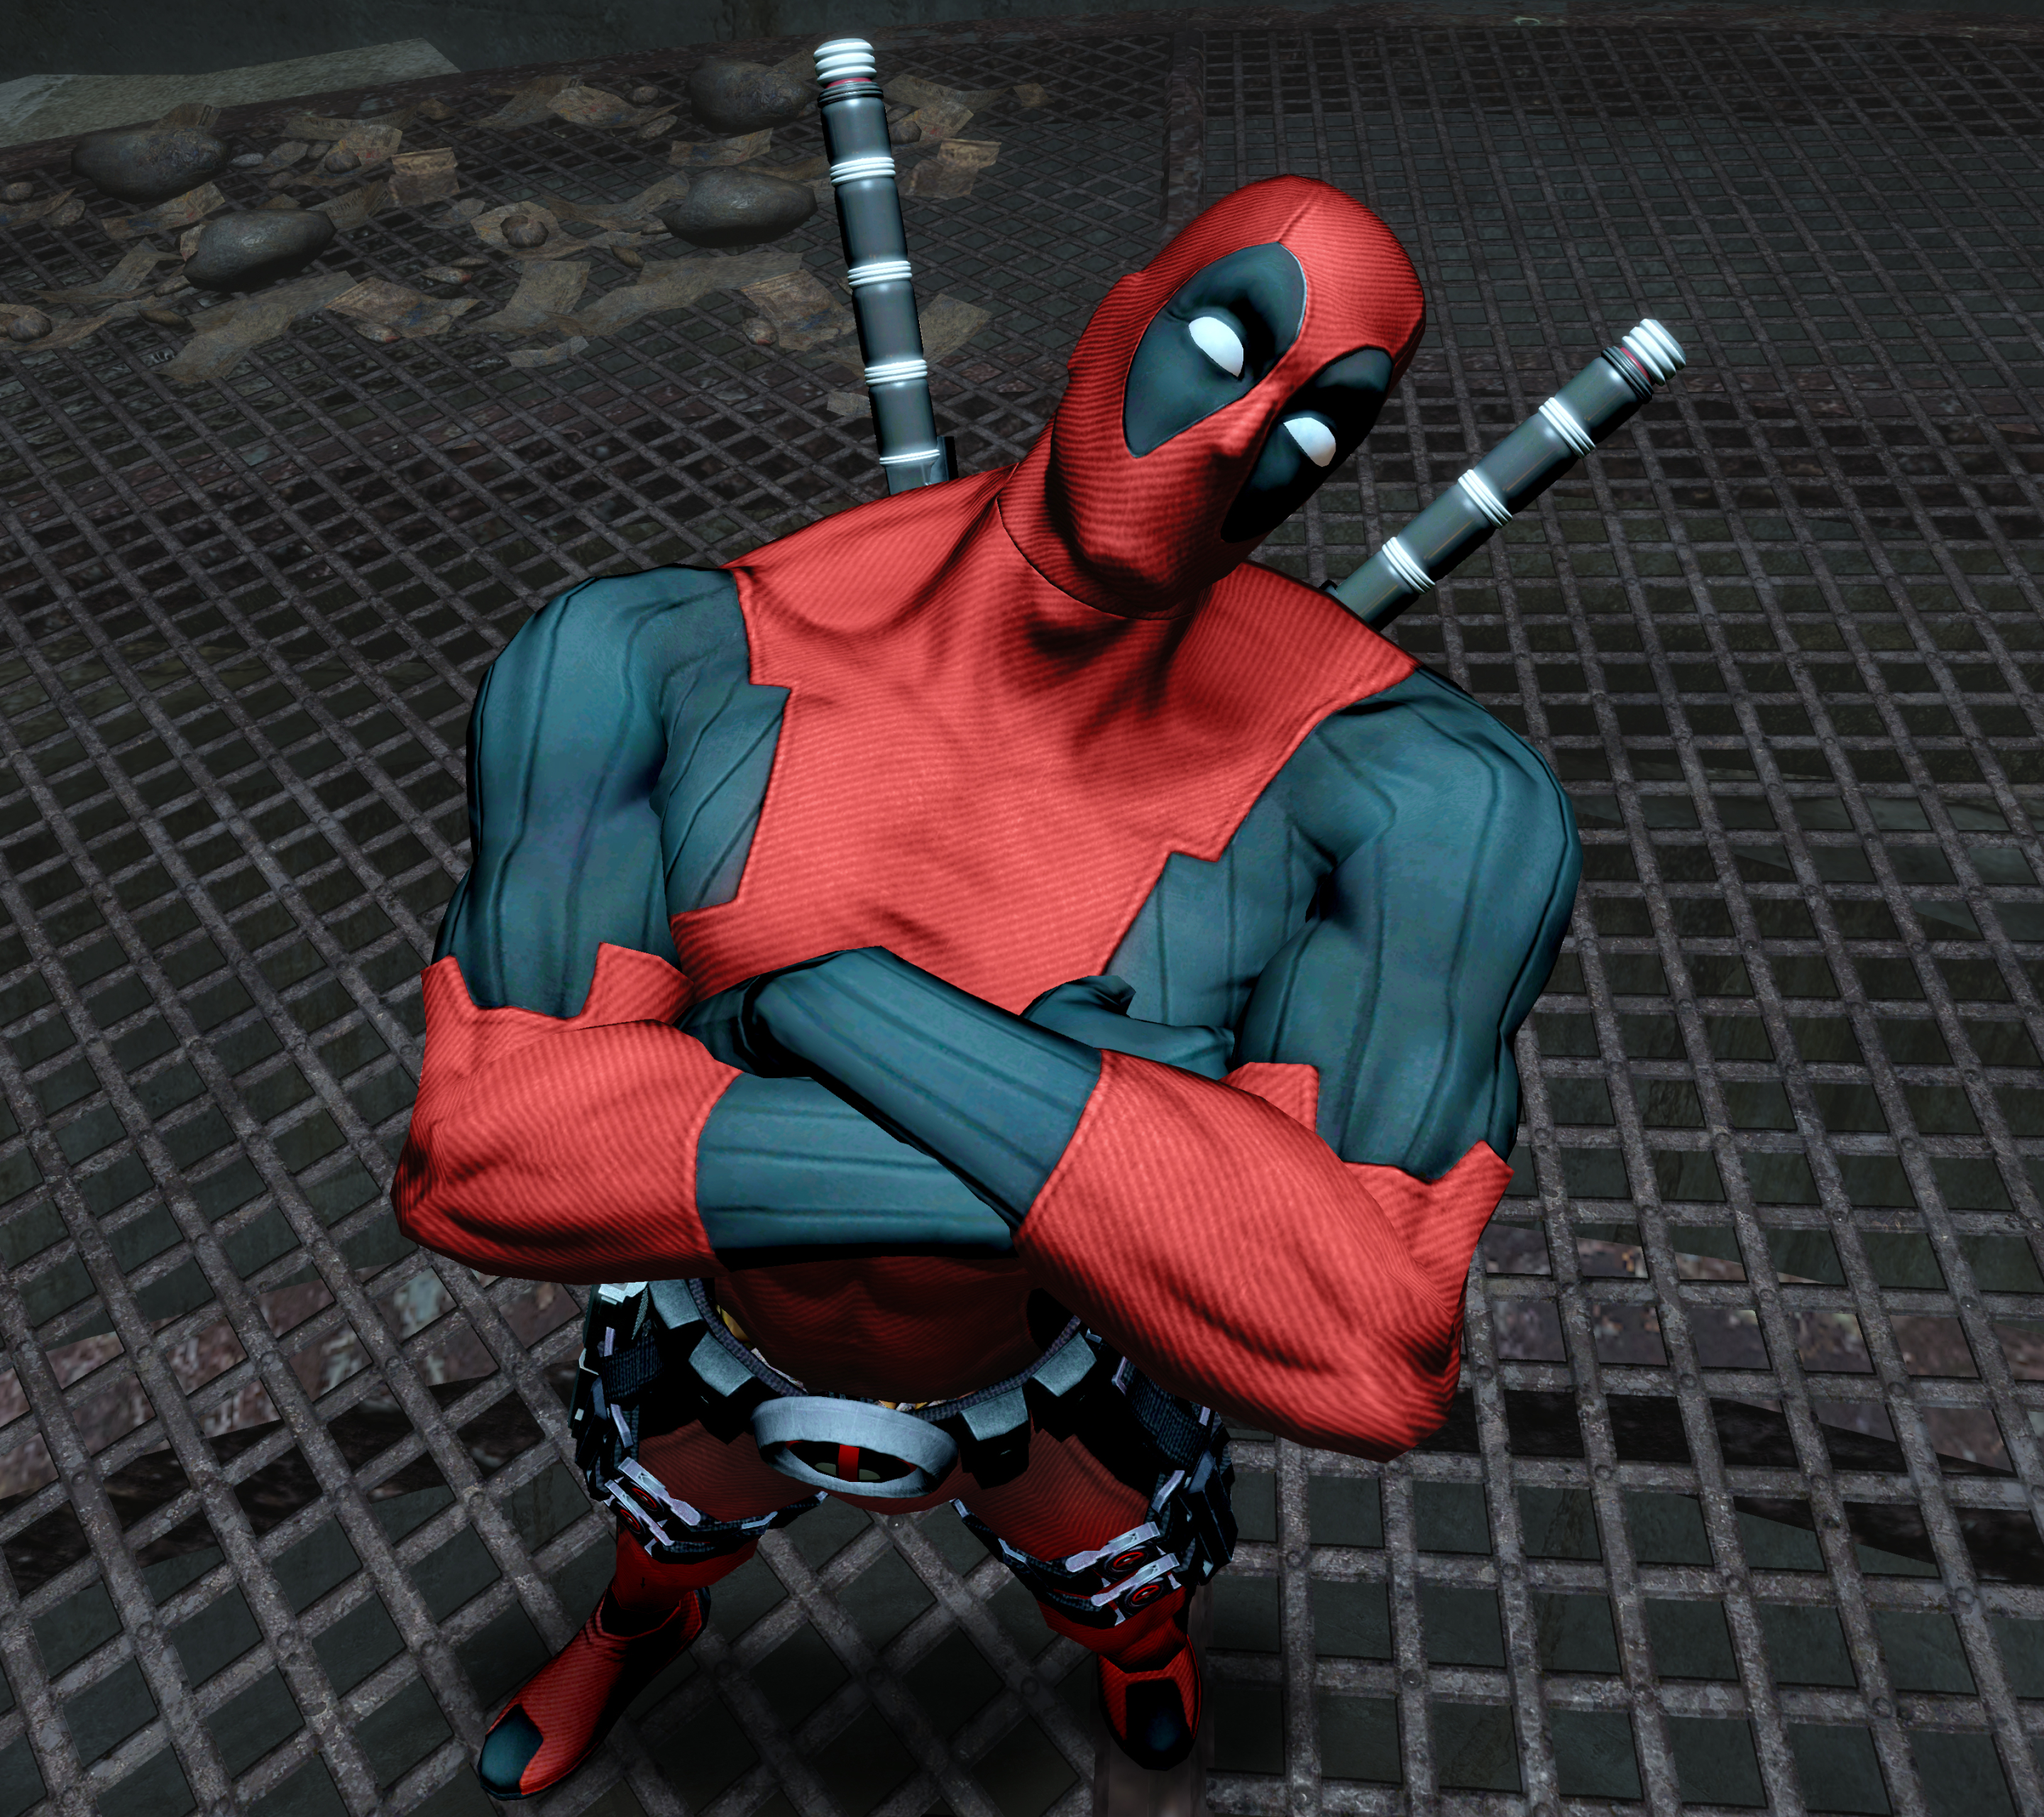 Video Game Deadpool 2880x2560 Wallpaper Id 614660 Mobile Abyss